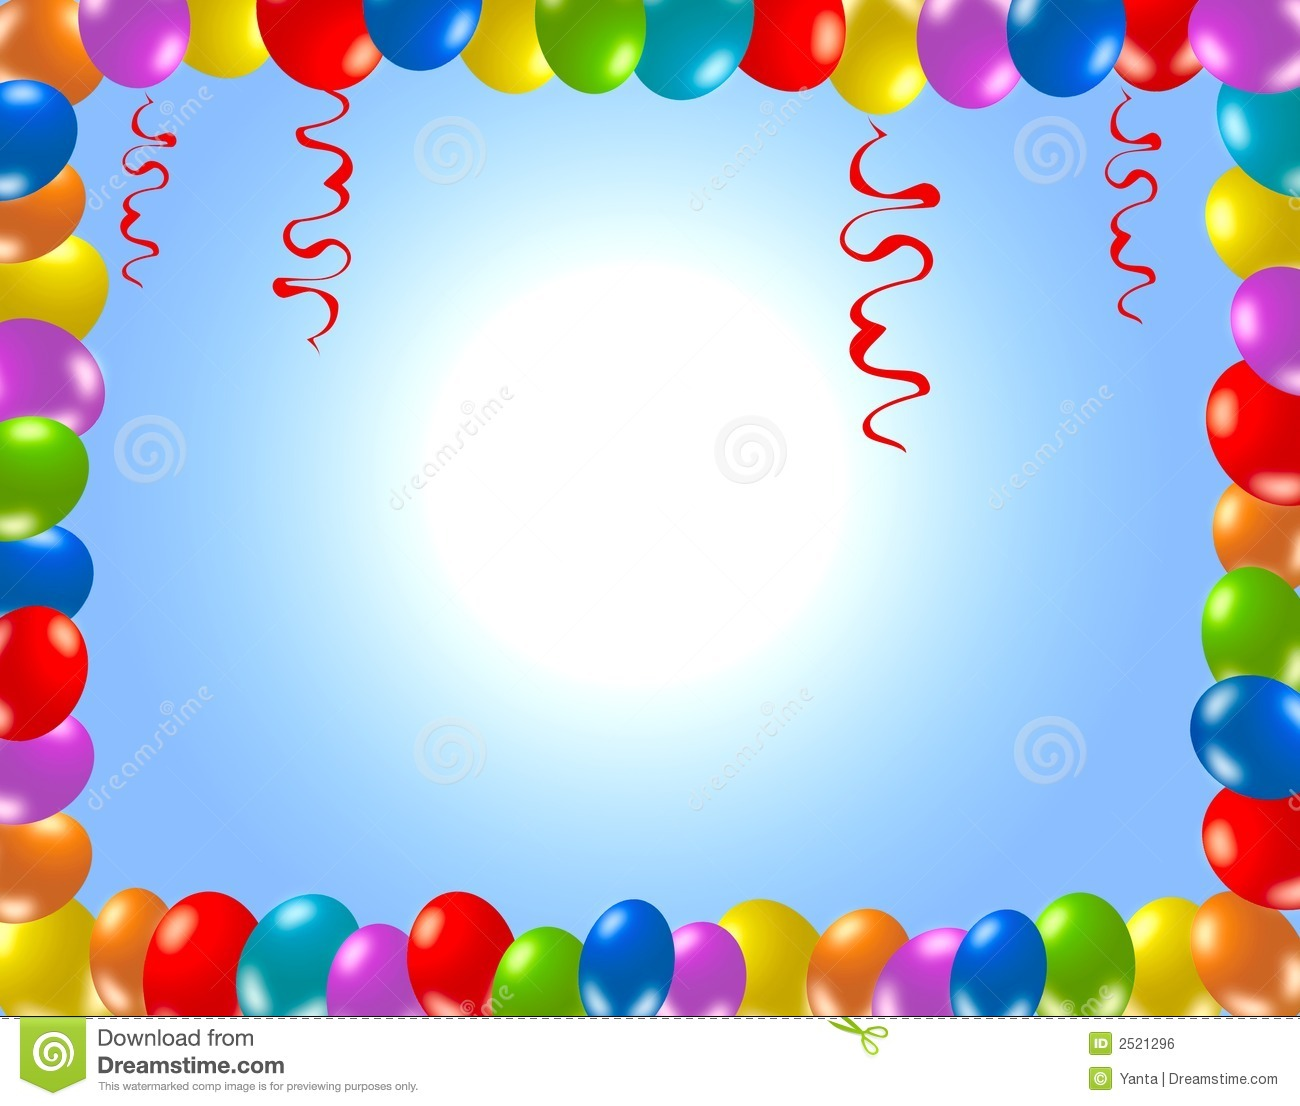 Colorful Party Background Royalty Free Stock Image - Image  2521296Birthday Celebration Background Hd